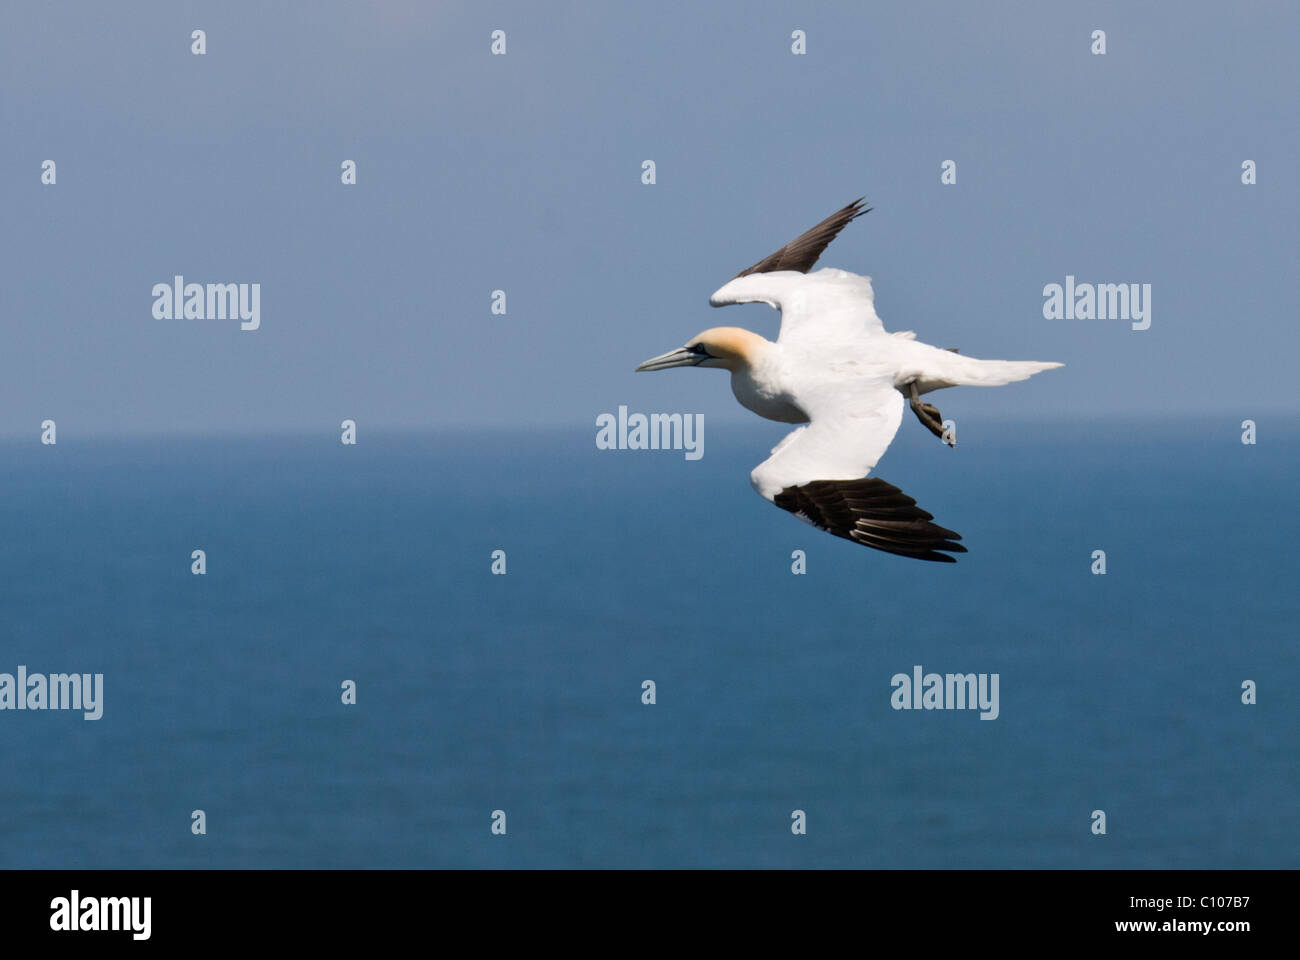 An image of a Gannet ( Morus Sulidae) in flight over the sea - Stock Image